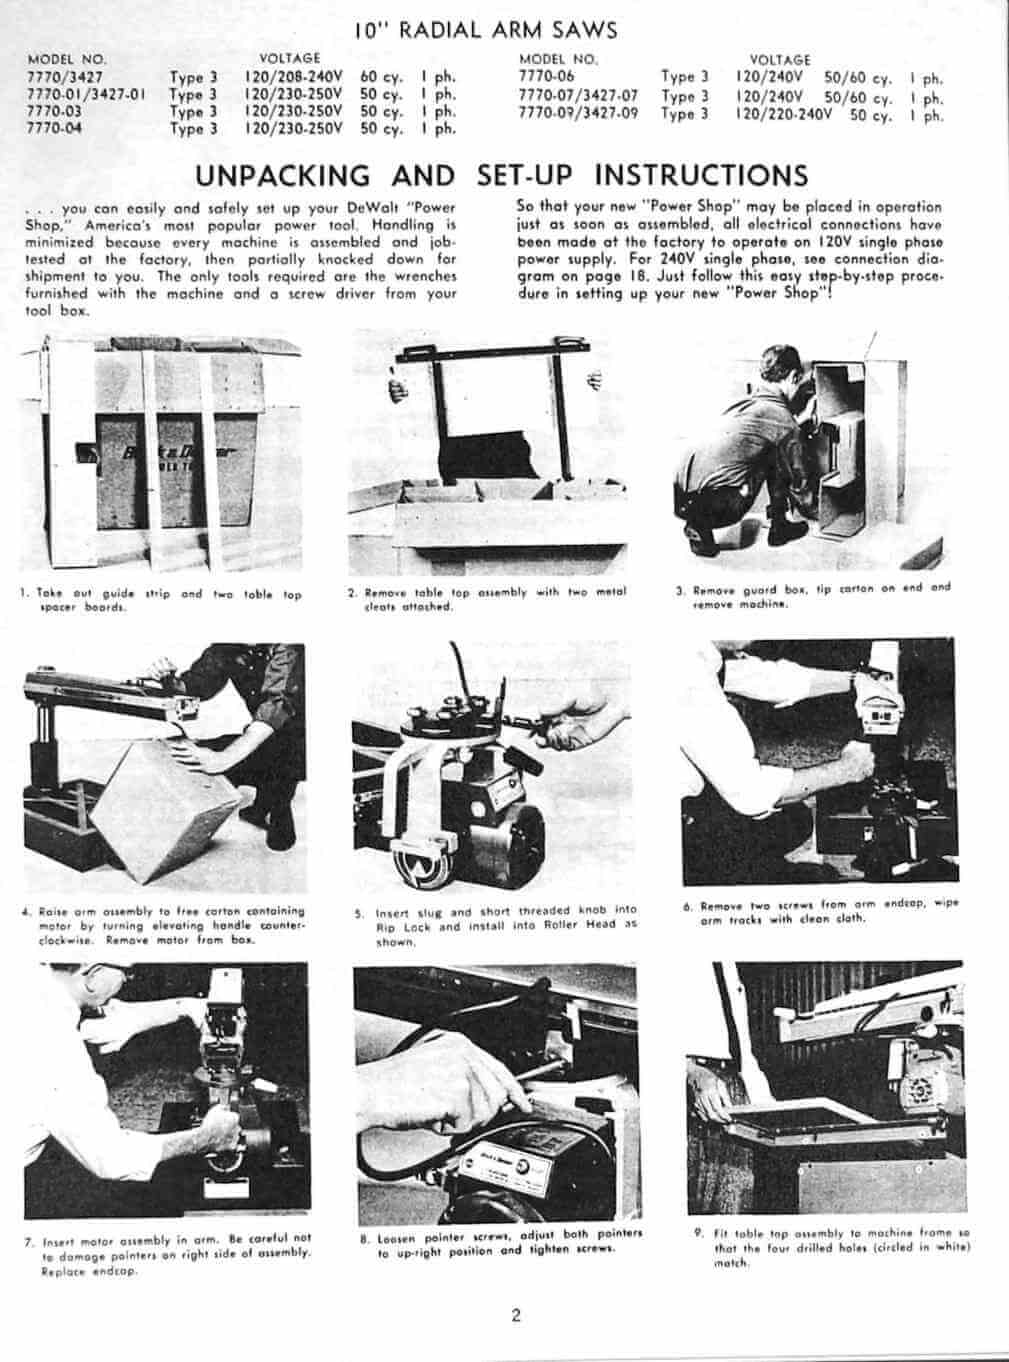 1026a dewalt 7770 10 inch radial arm saw owner's instructions and parts  at panicattacktreatment.co